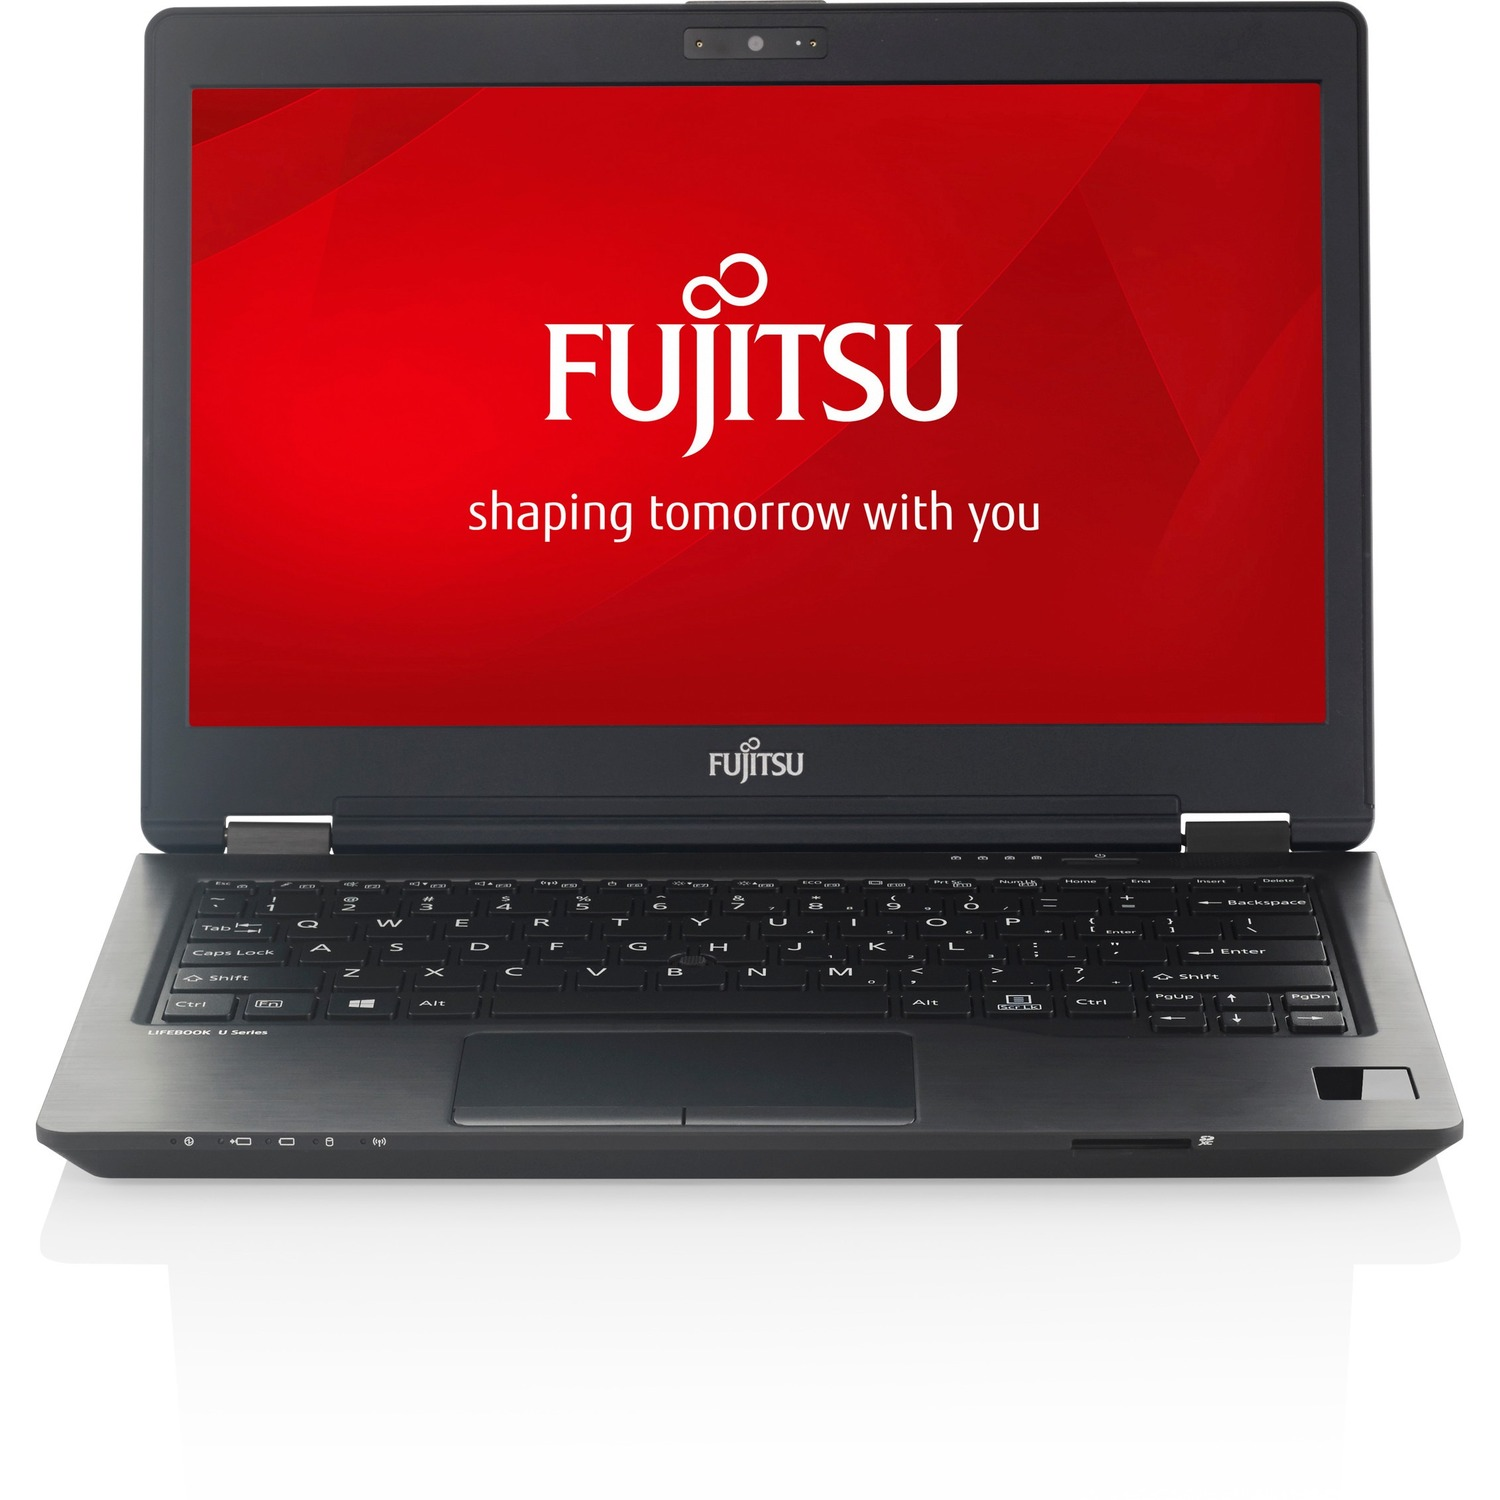 Fujitsu LIFEBOOK U727 31.8 cm 12.5inch LCD Notebook - Intel Core i7 7th Gen i7-7500U Dual-core 2 Core 2.70 GHz - 8 GB DDR4 SDRAM - 256 GB SSD - Windows 10 Pro 64-